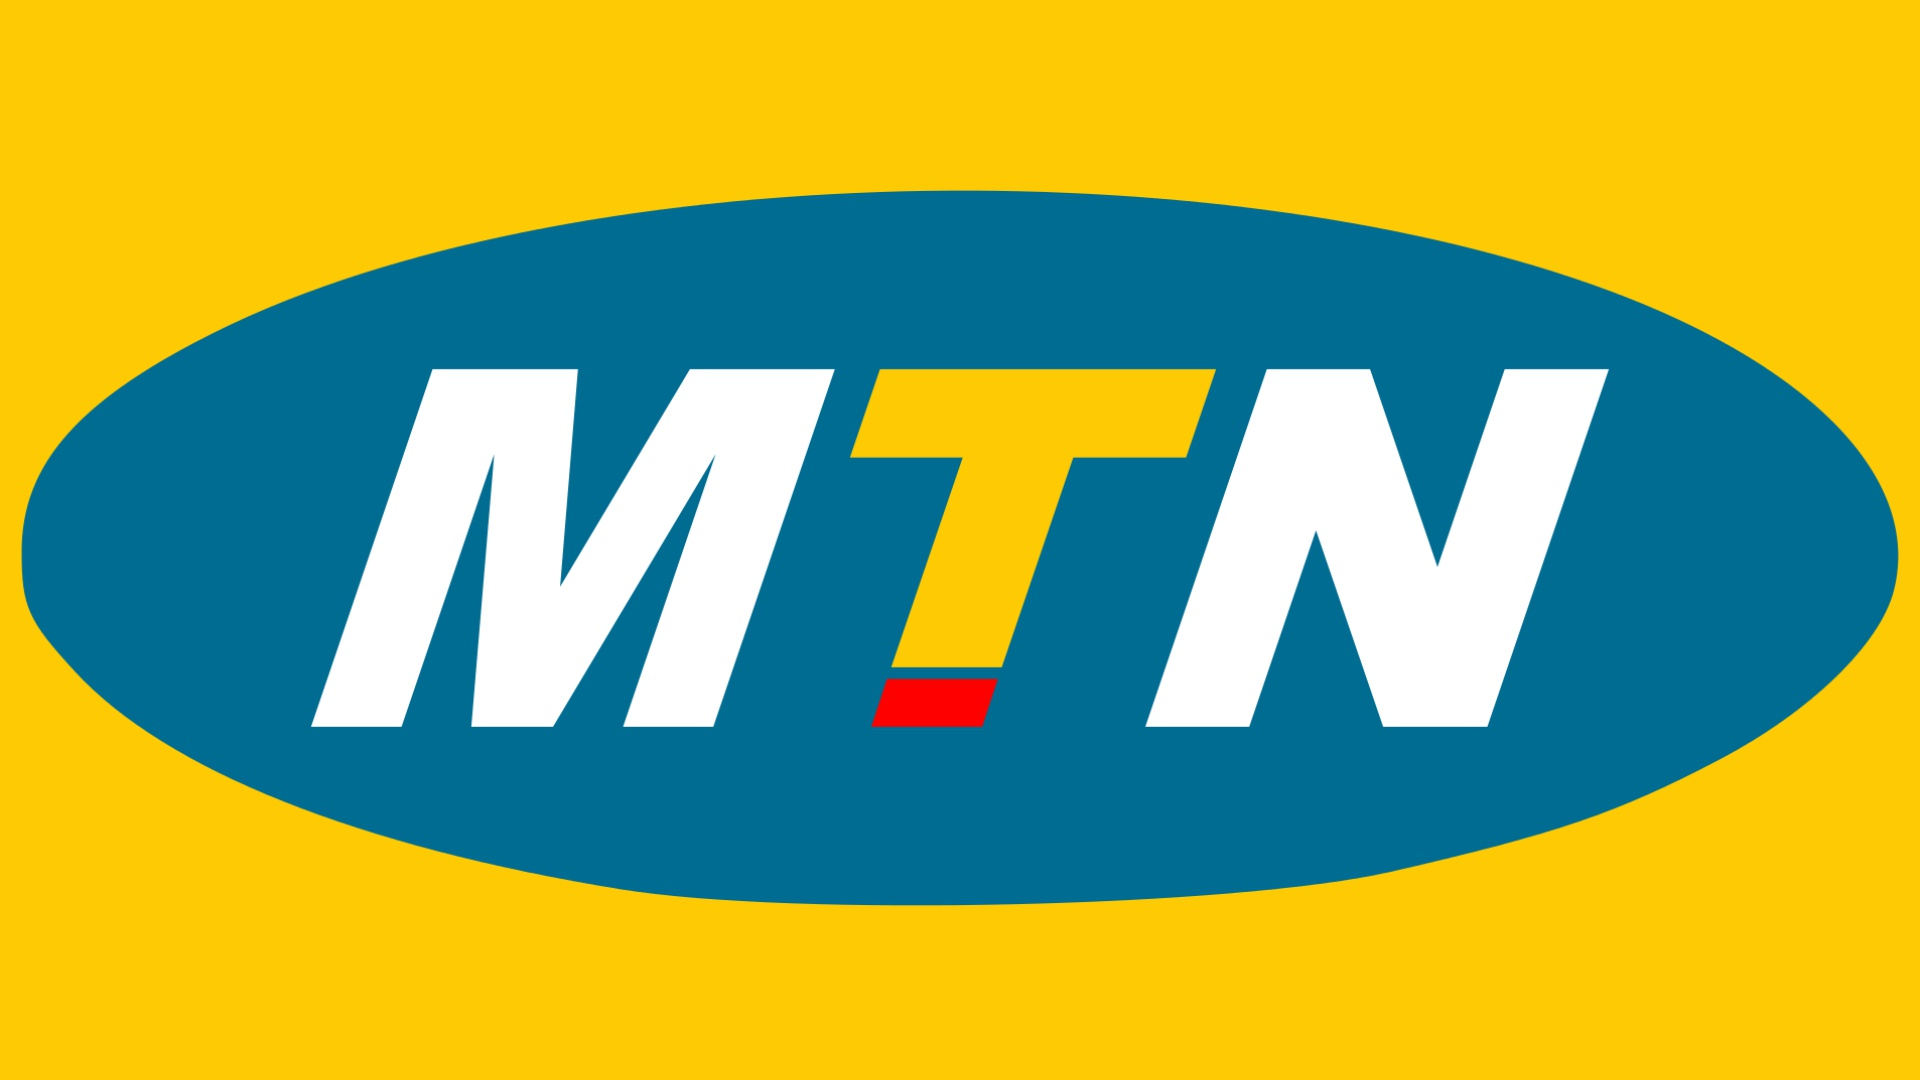 Mtn Discounts Contract And Device Packages For Black Friday Htxt Africa